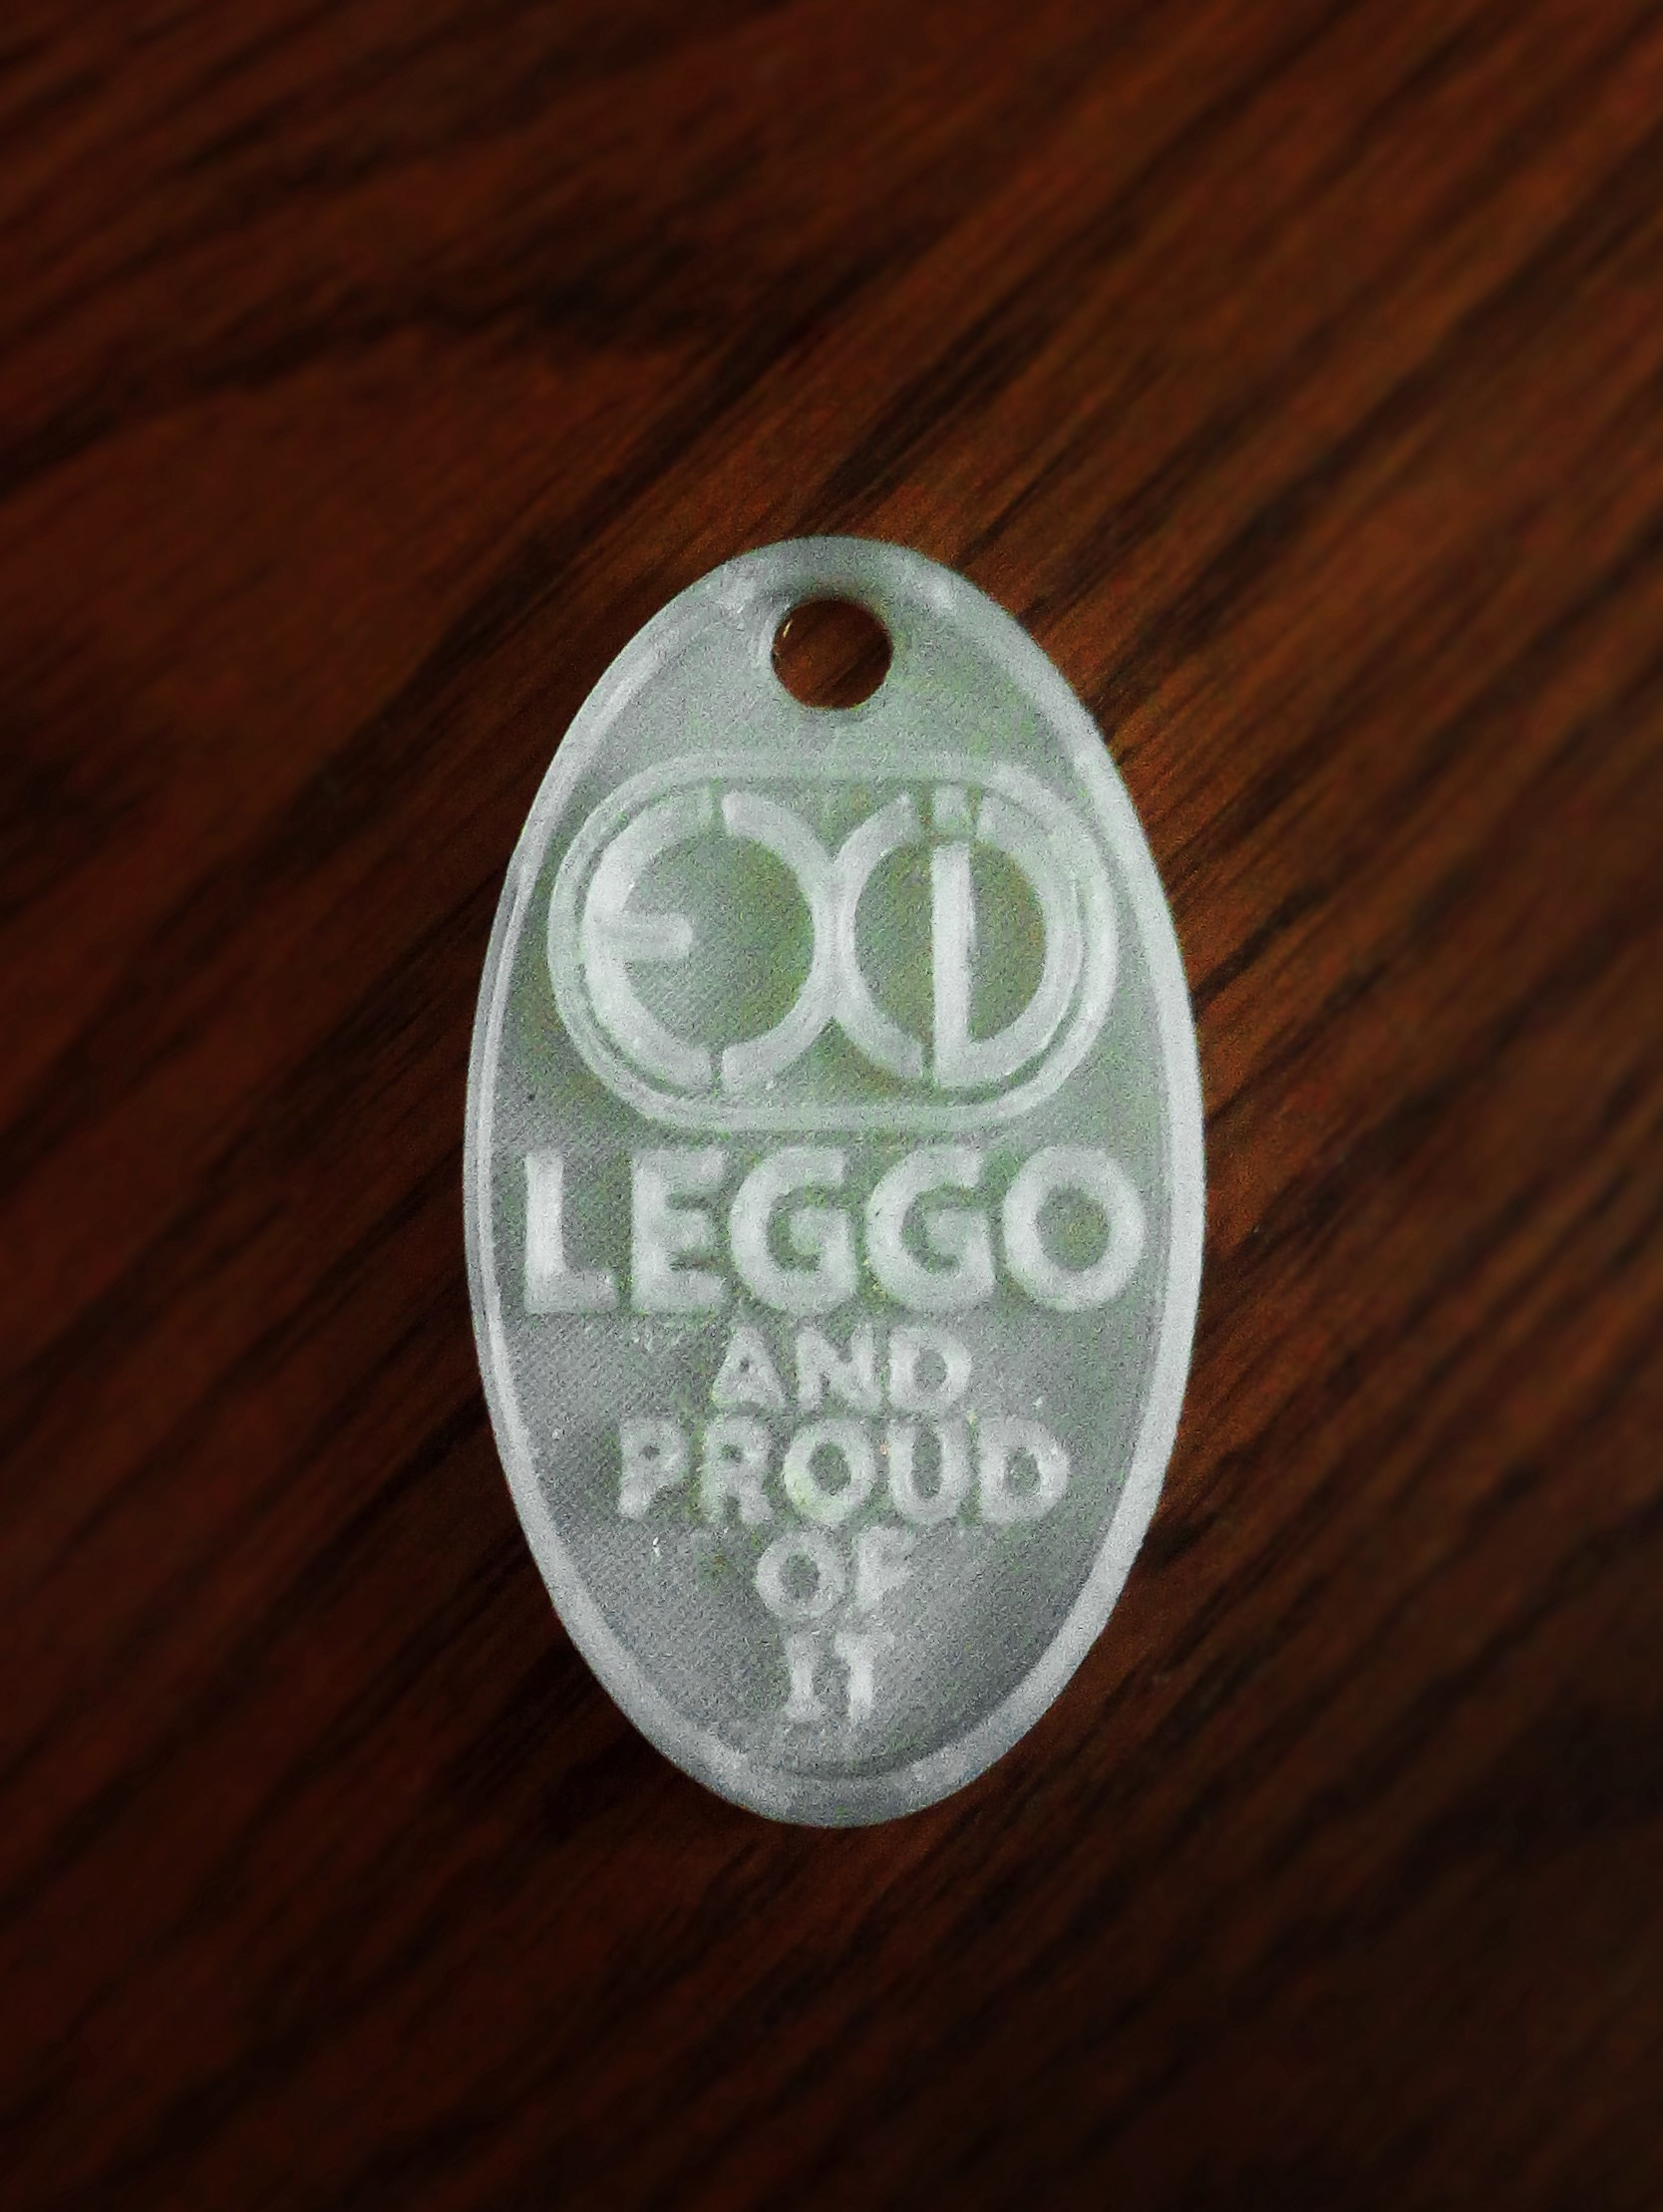 IMG_20190226_053735 (2).jpg Download free STL file EXID Leggo and proud of it • 3D printing design, atarka3